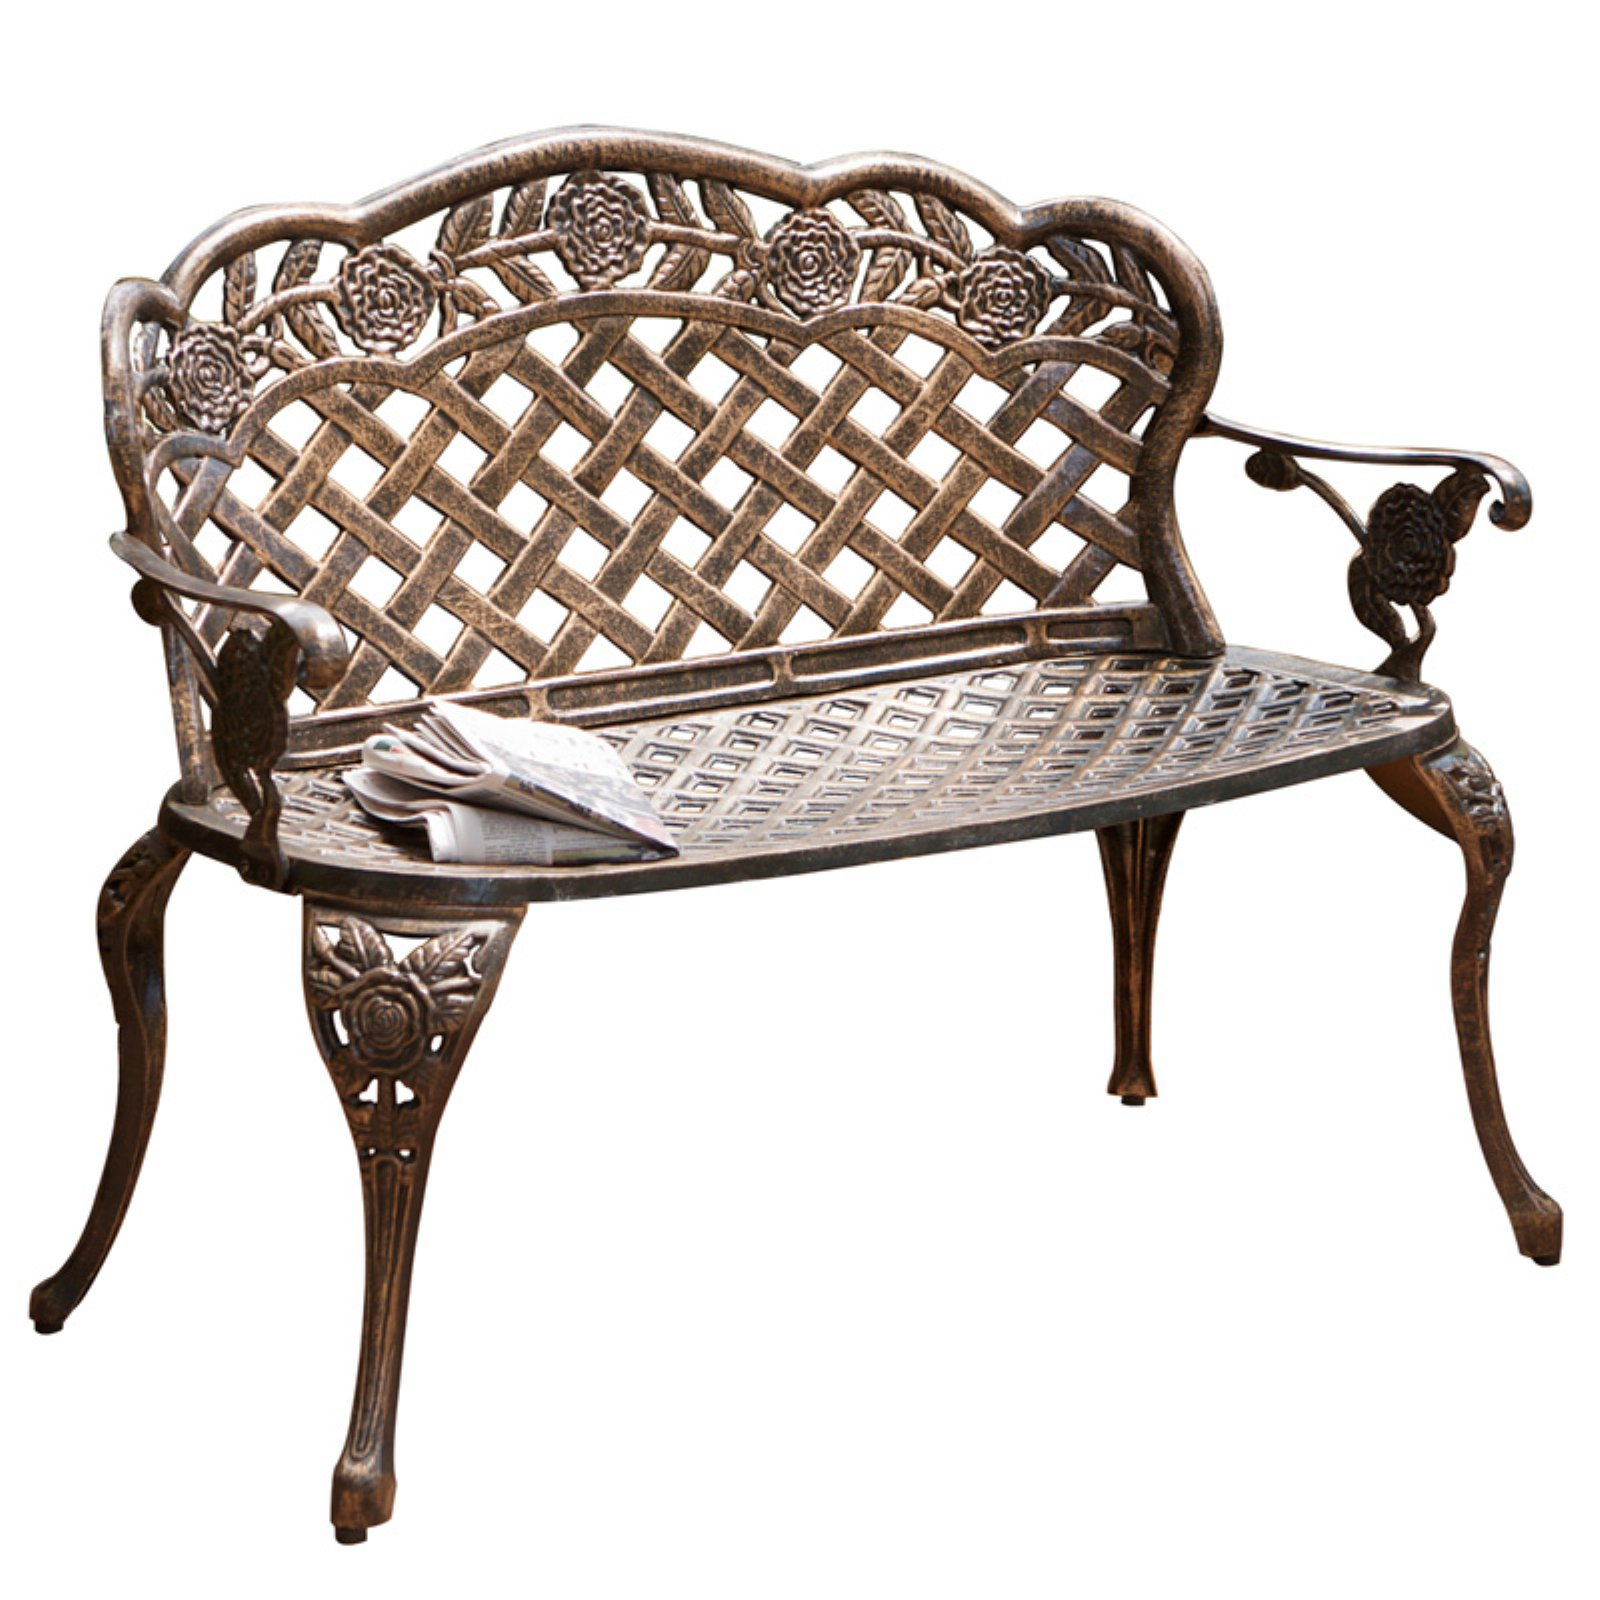 Rose and Lattice Cast Aluminum Antique Copper Curved Garden Bench